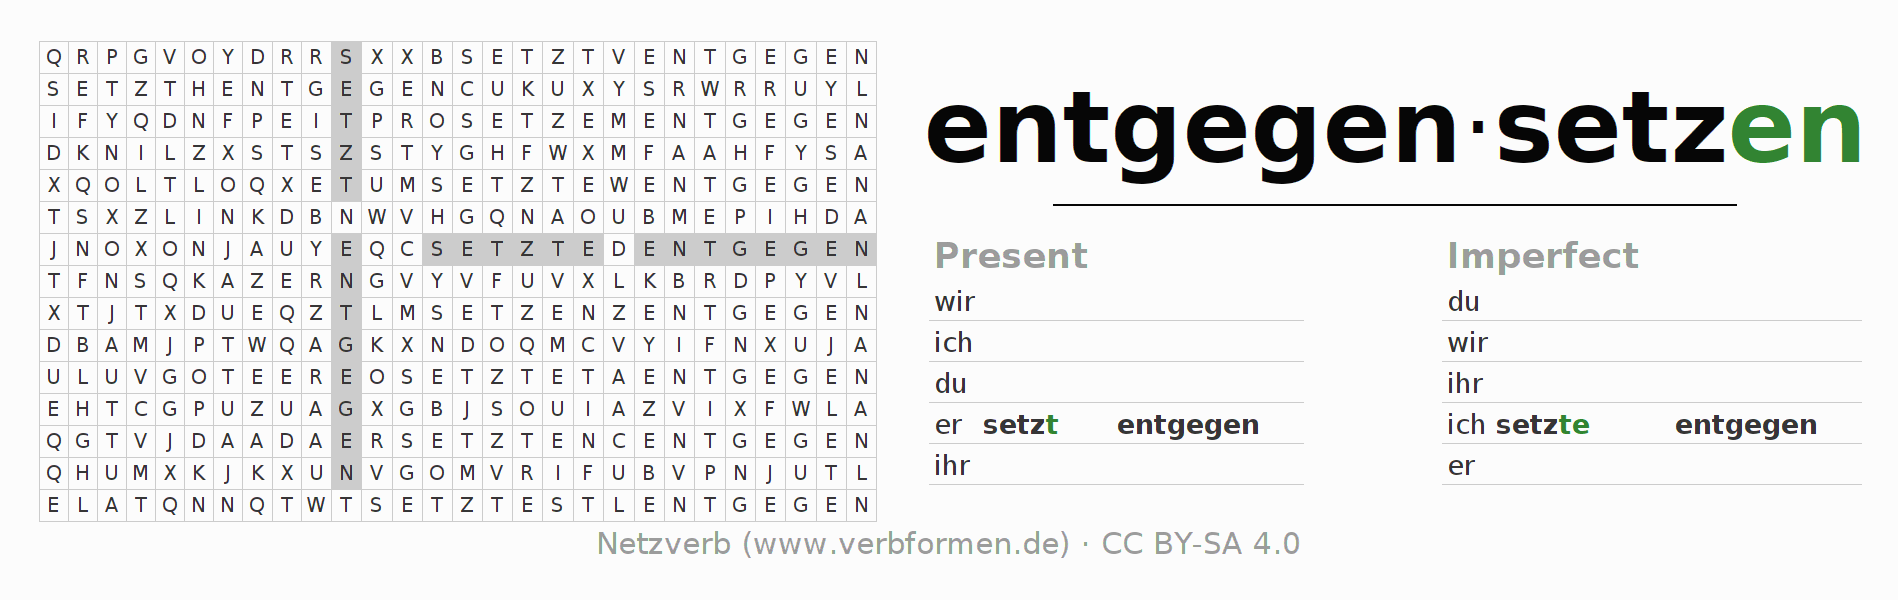 Word search puzzle for the conjugation of the verb entgegensetzen